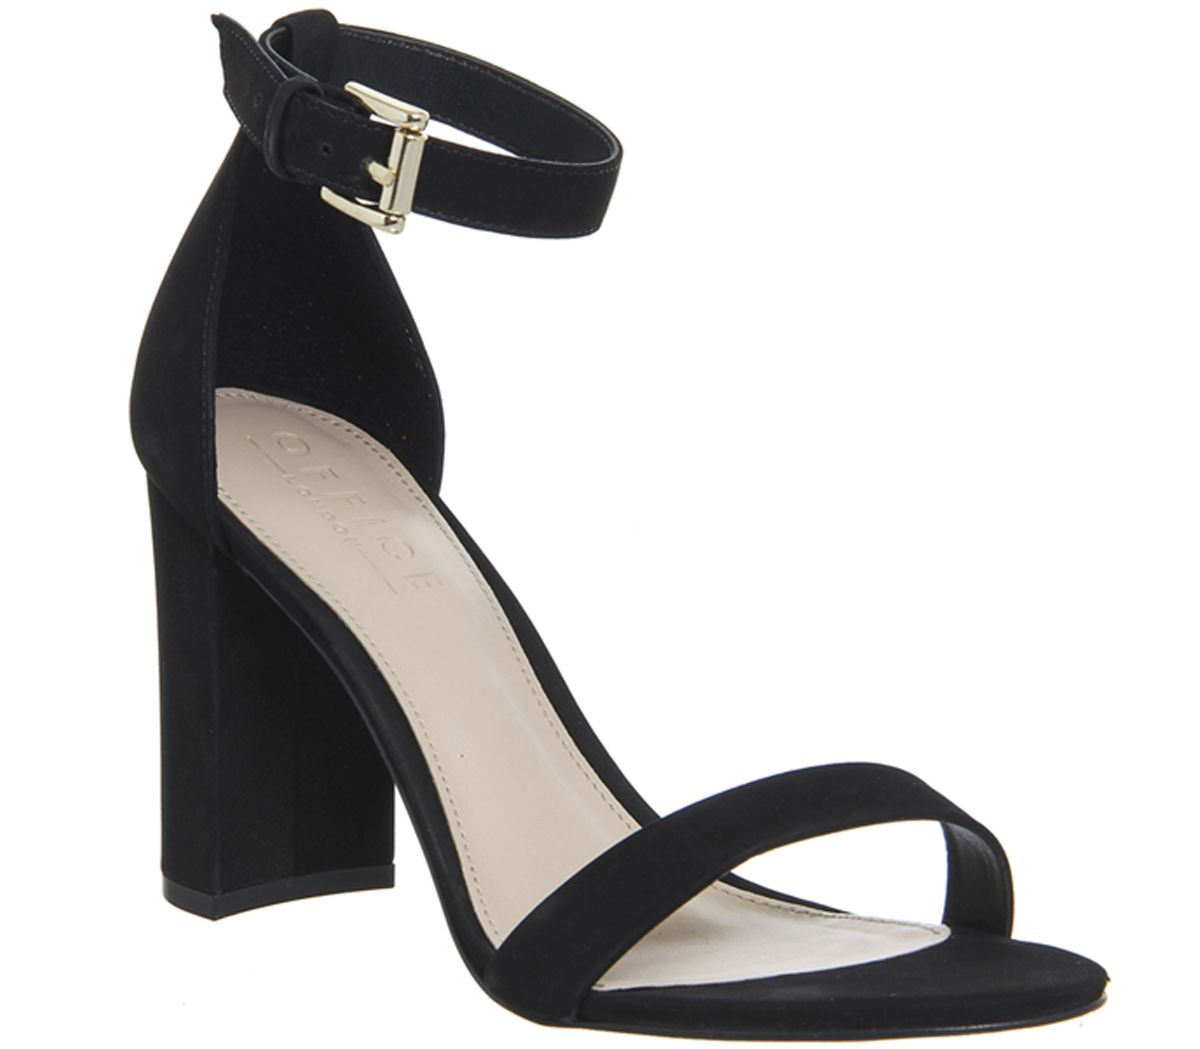 2f0165be4fc1 Kate's 'Nina' Block Heel Sandals by Office UK is back in stock in all sizes  Aug 3 2017